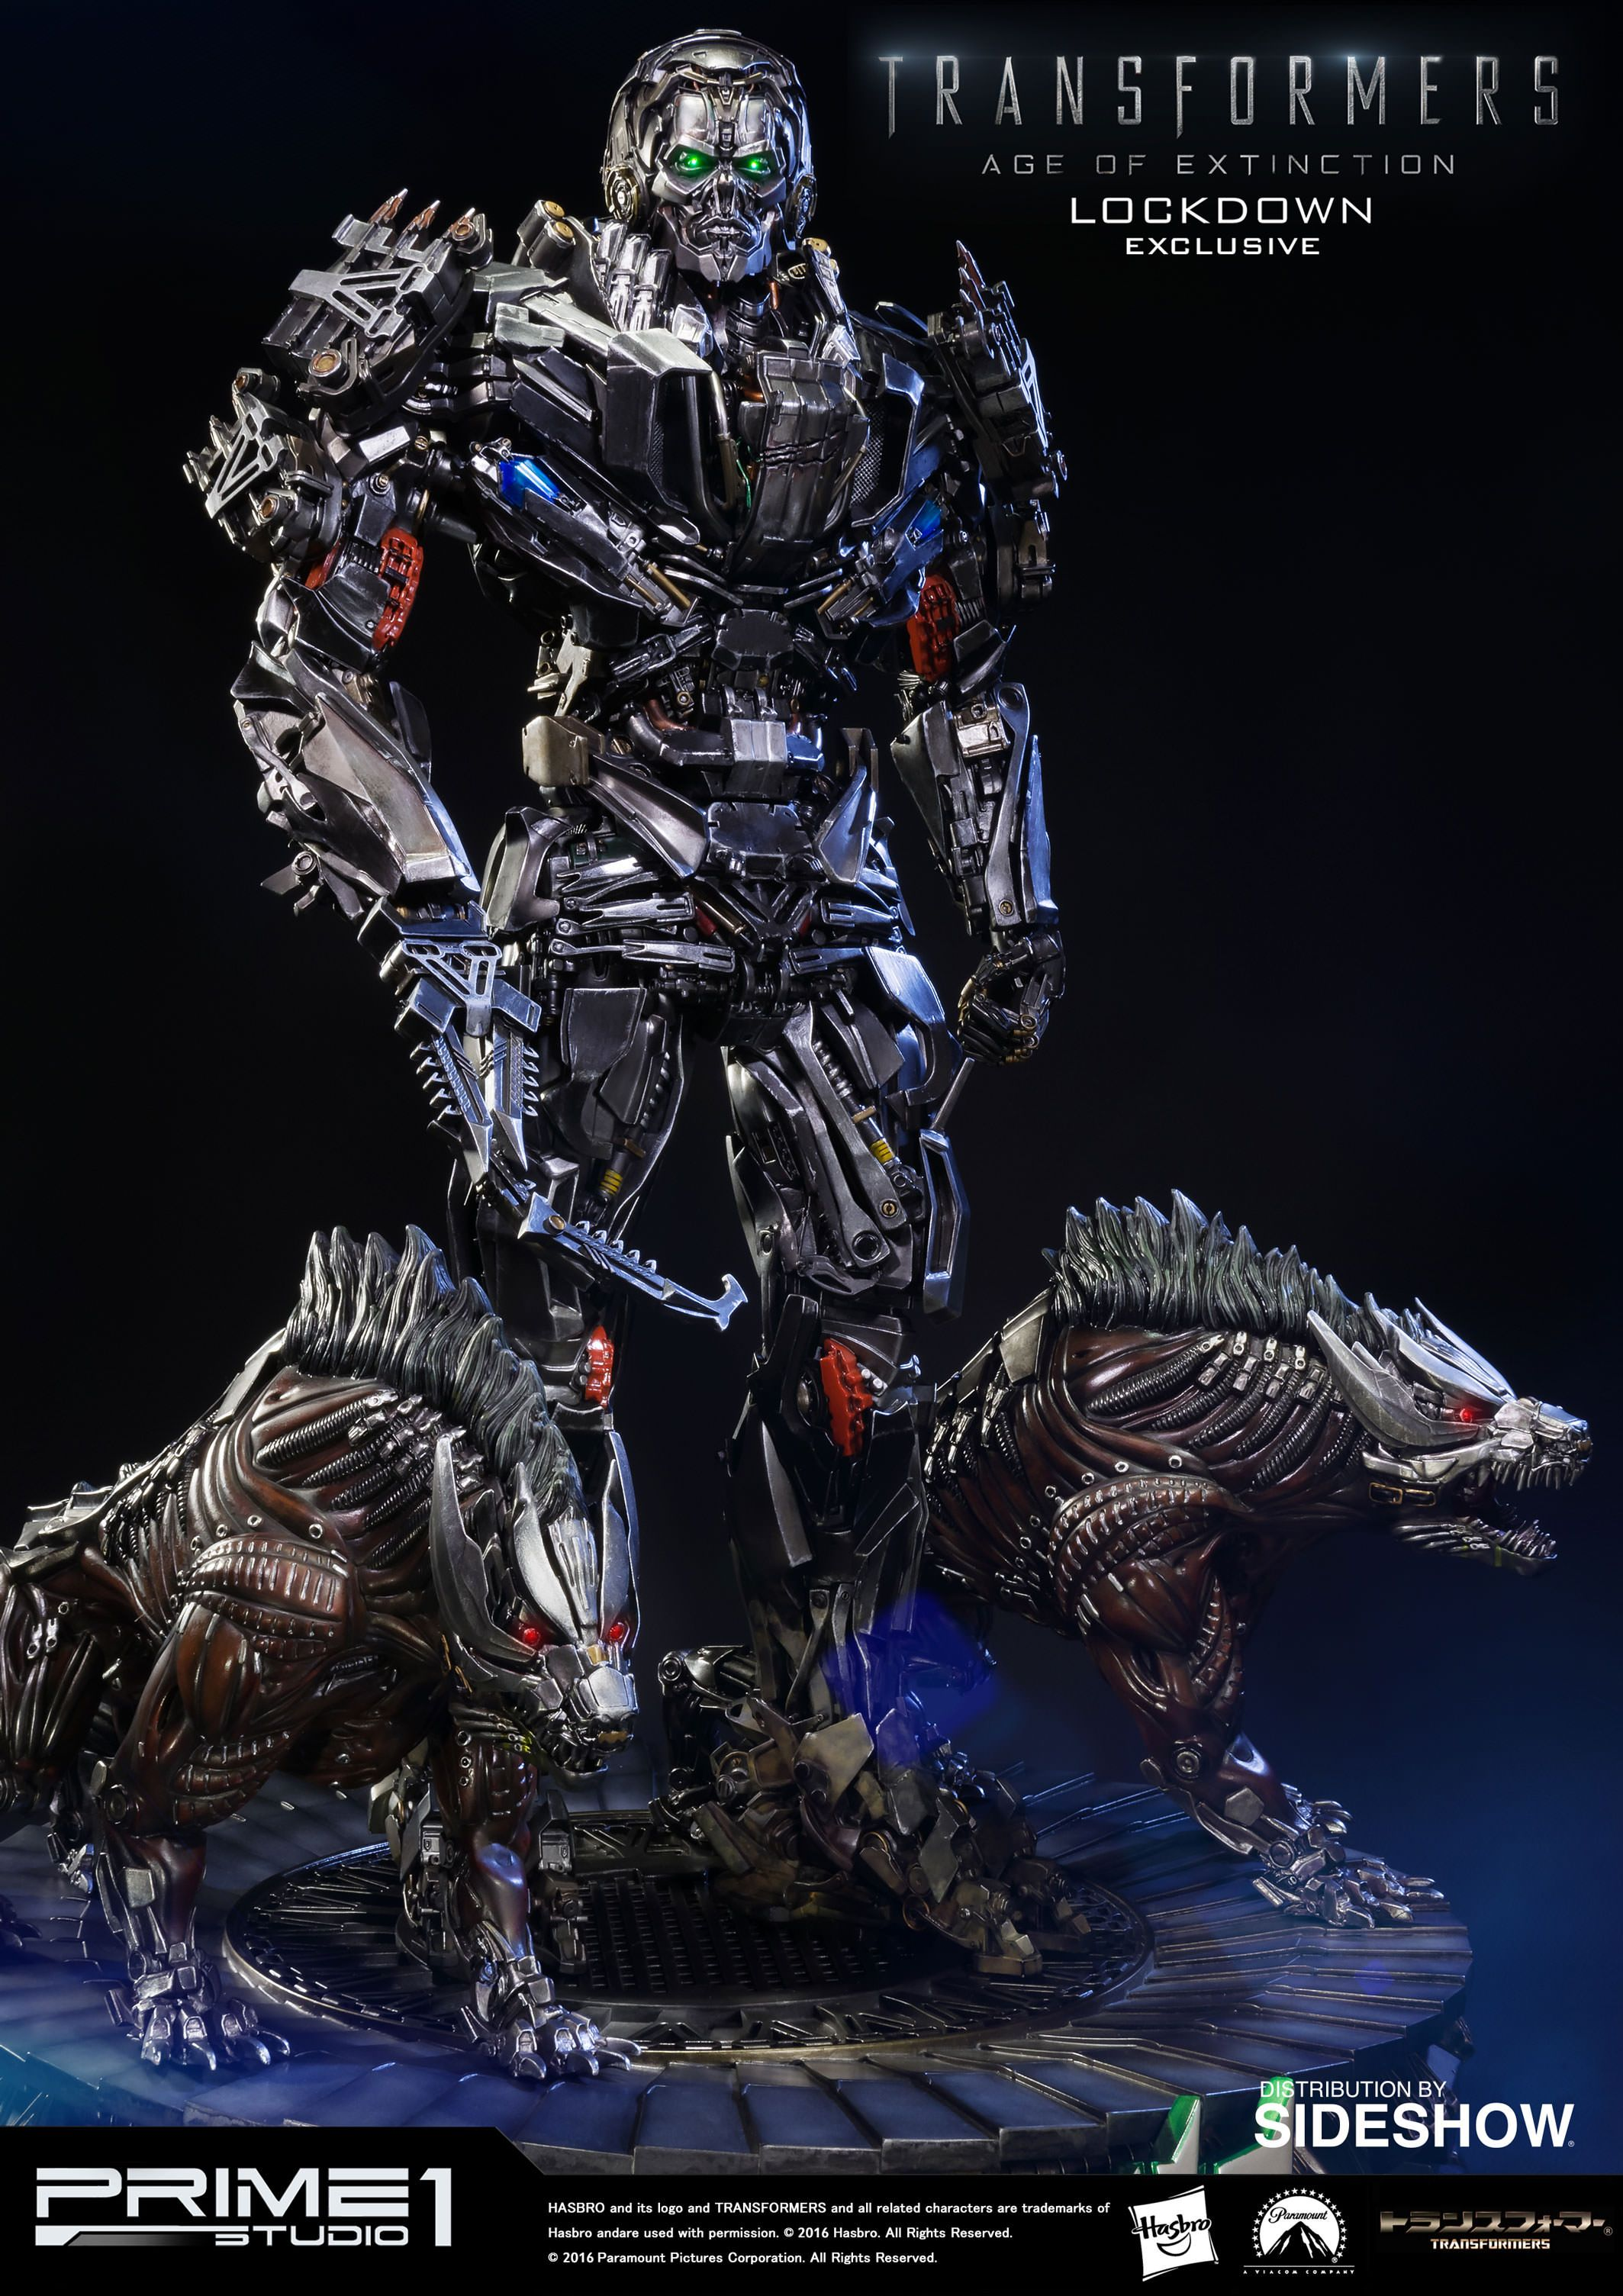 transformers lockdown polystone statue by prime 1 studio sideshow collectibles jouet et. Black Bedroom Furniture Sets. Home Design Ideas